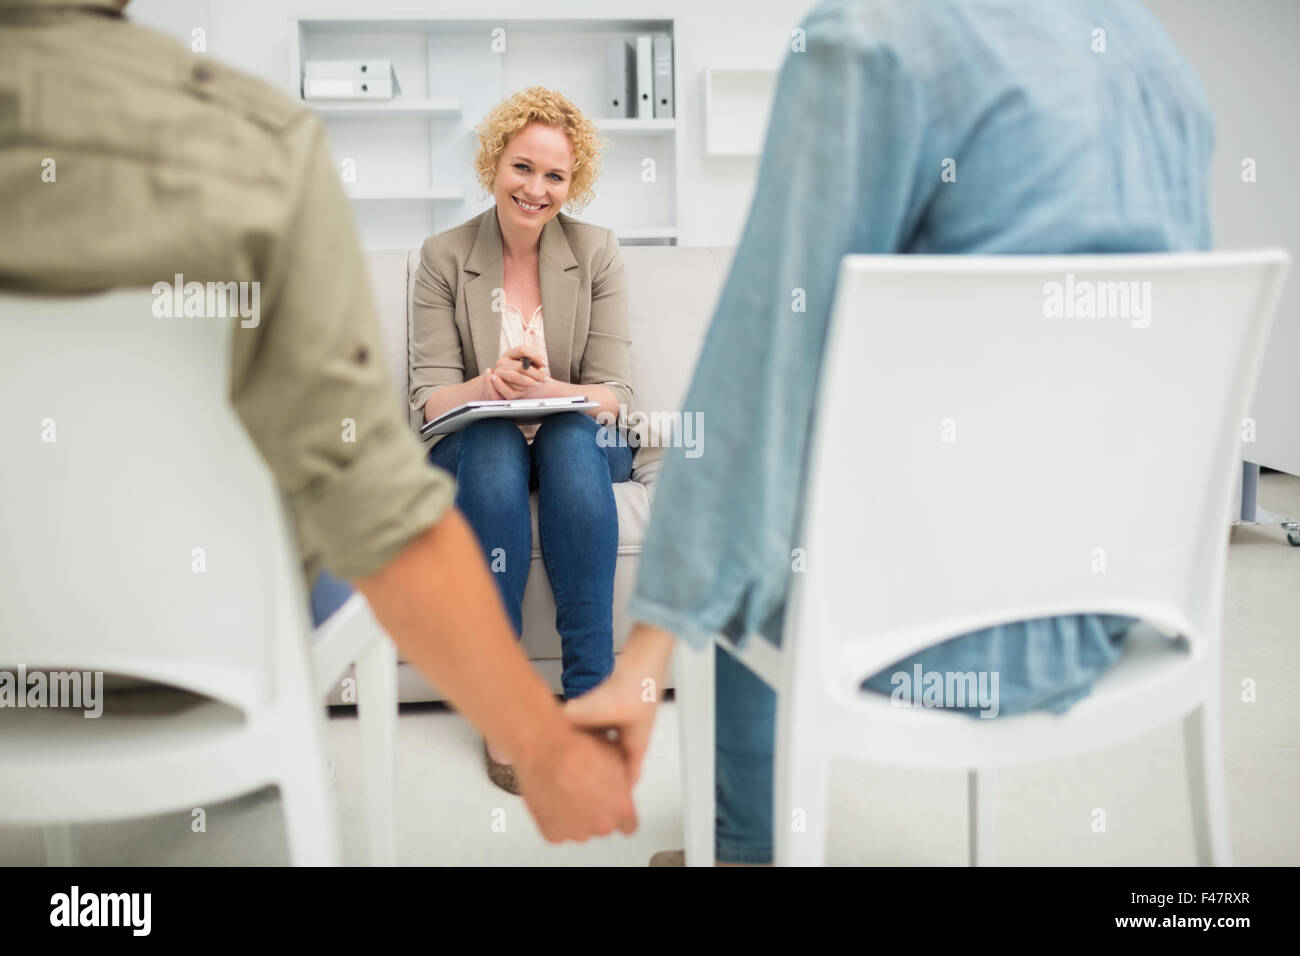 Psychologist helping a couple with relationship difficulties - Stock Image